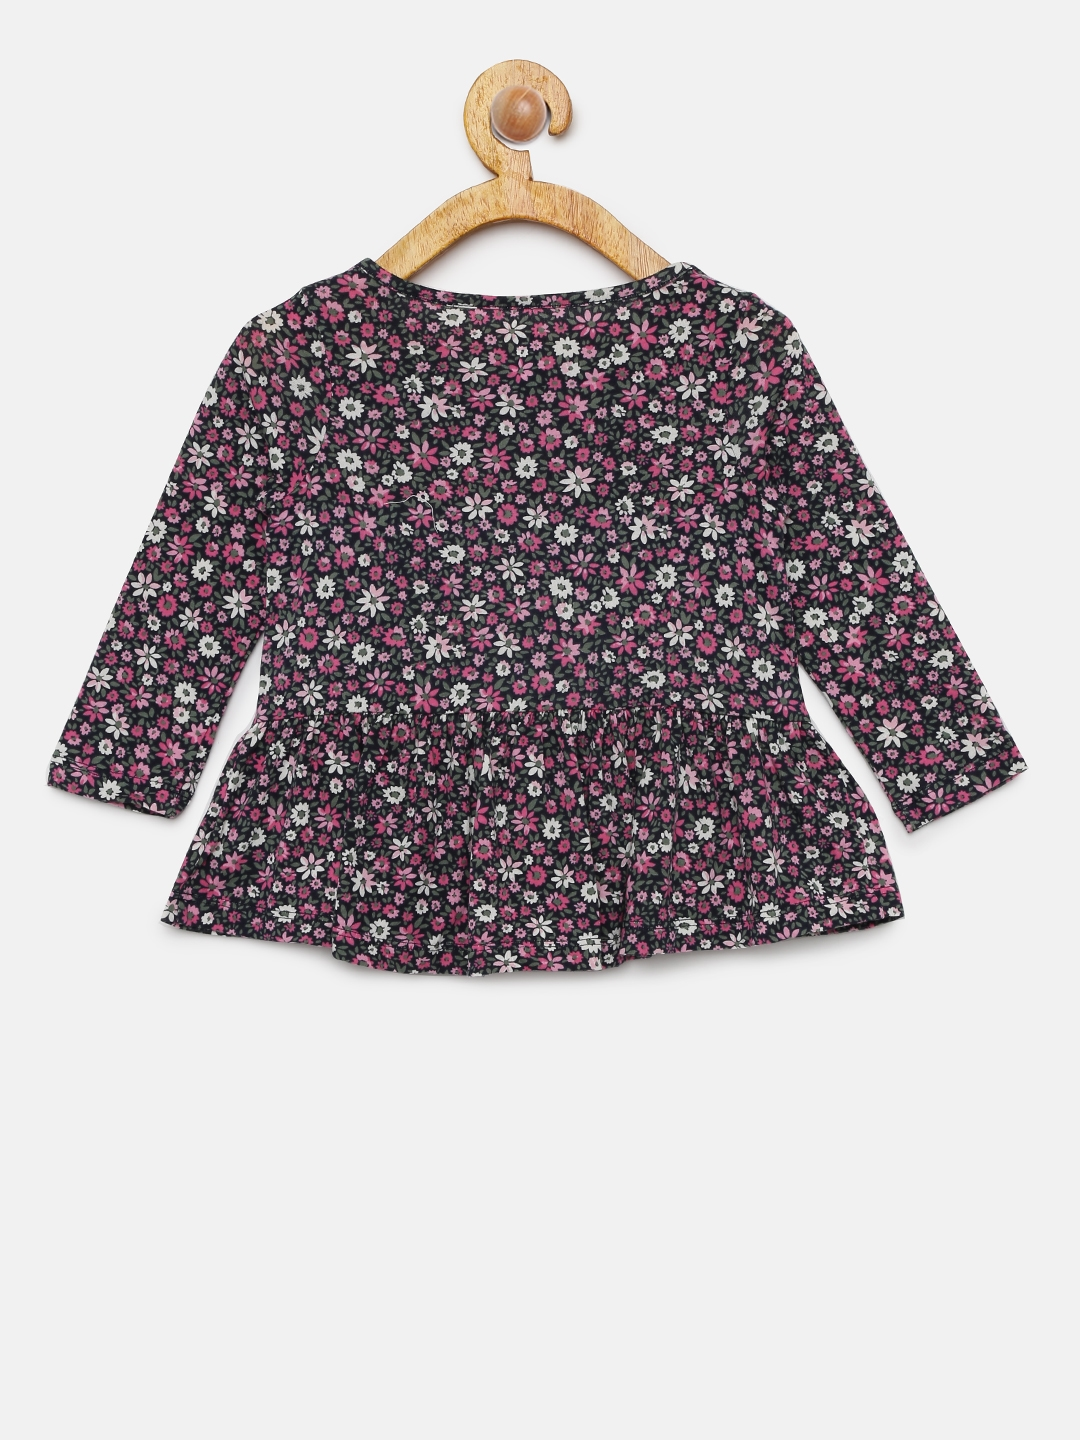 58f40042d Buy GAP Girls  Navy Blue   Pink Floral Print Tunic Top - Tops for ...